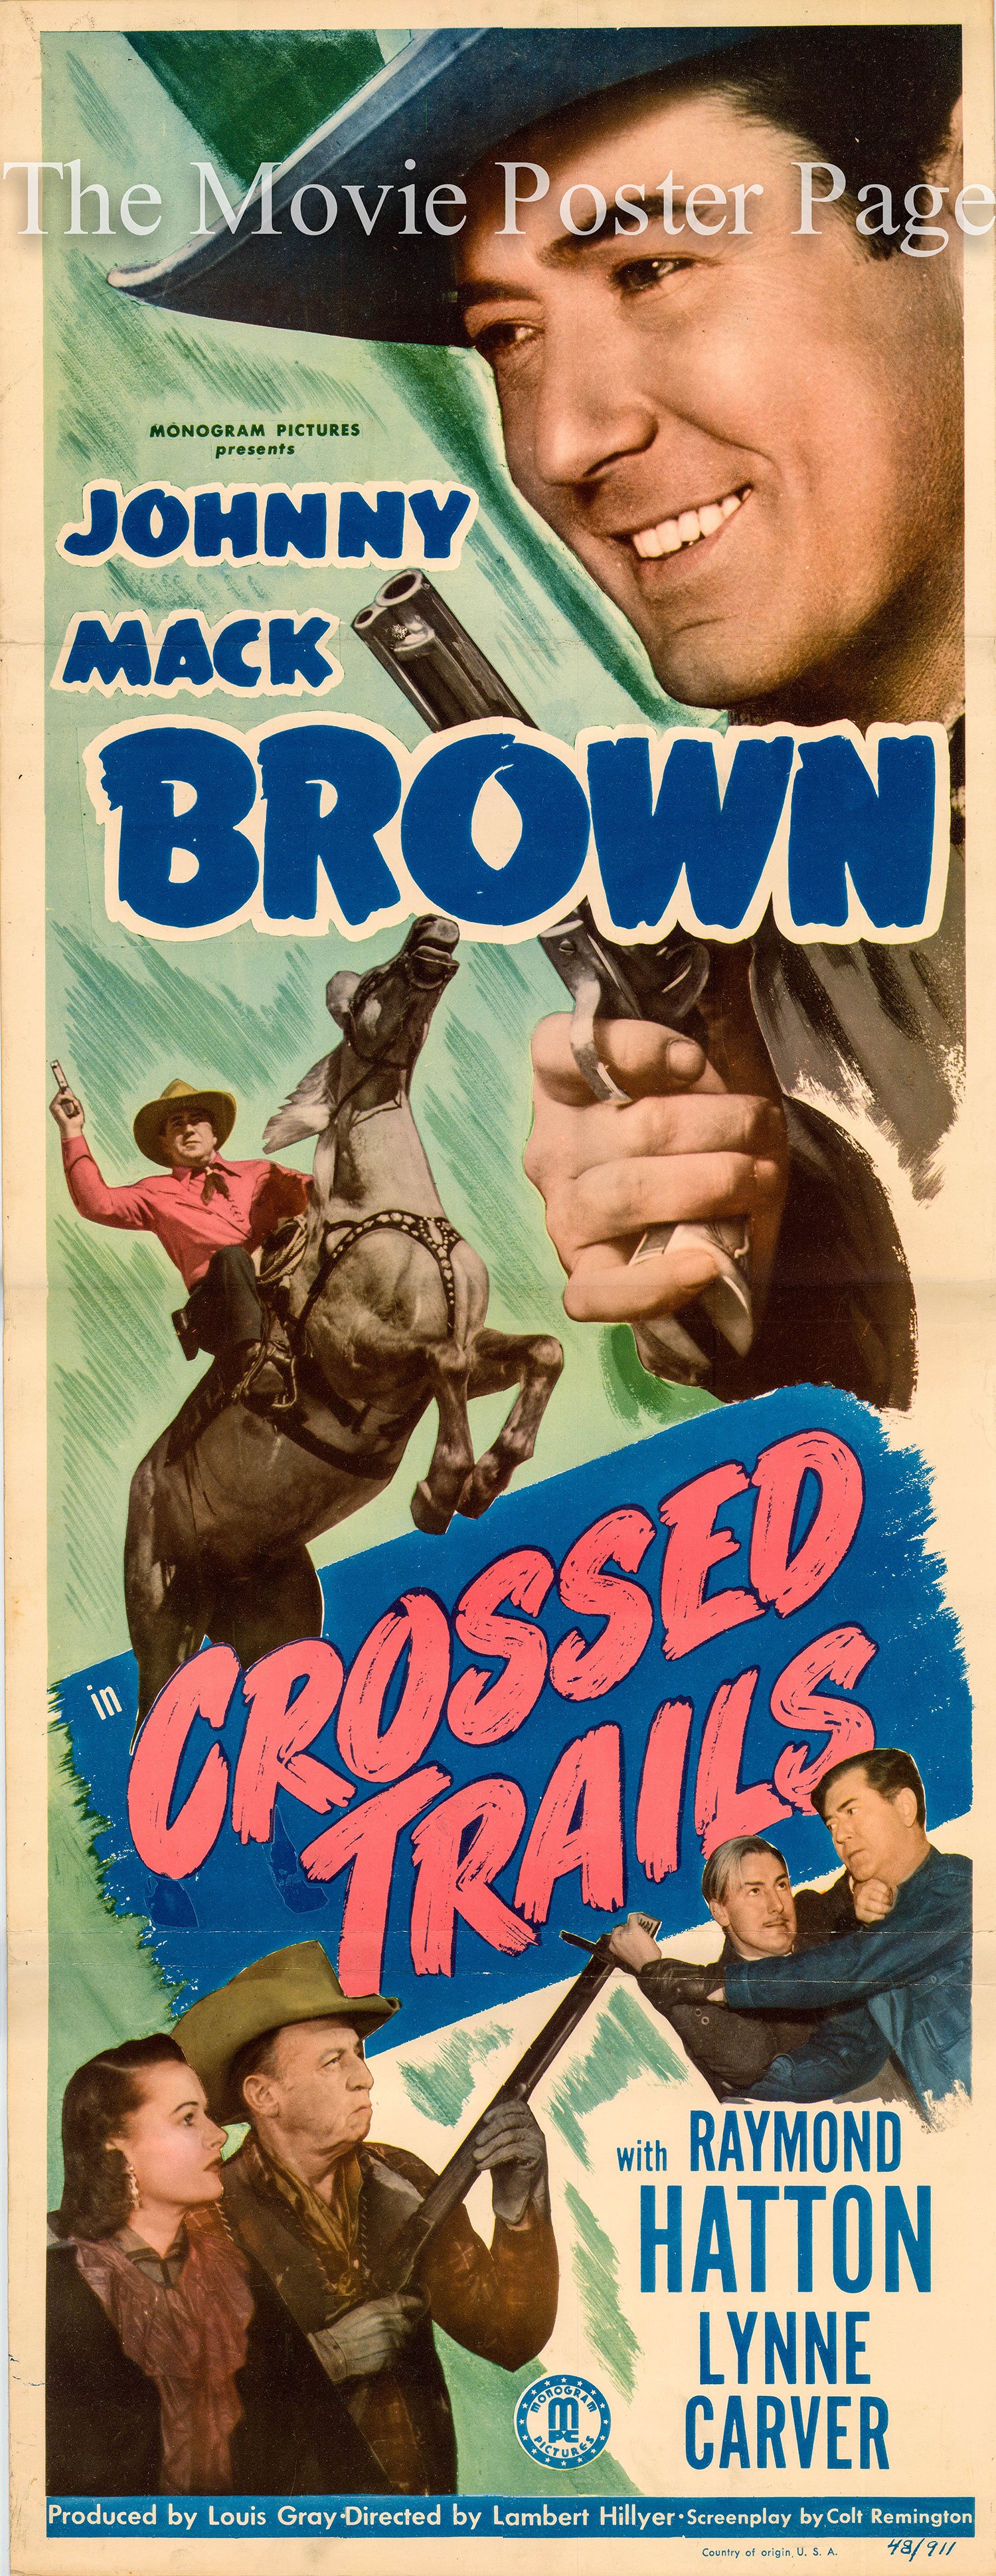 Pictured is a US insert promotional poster for the 1948 film Lambert Hillyer film Crossed Trails starring Johnny Mack Brown.